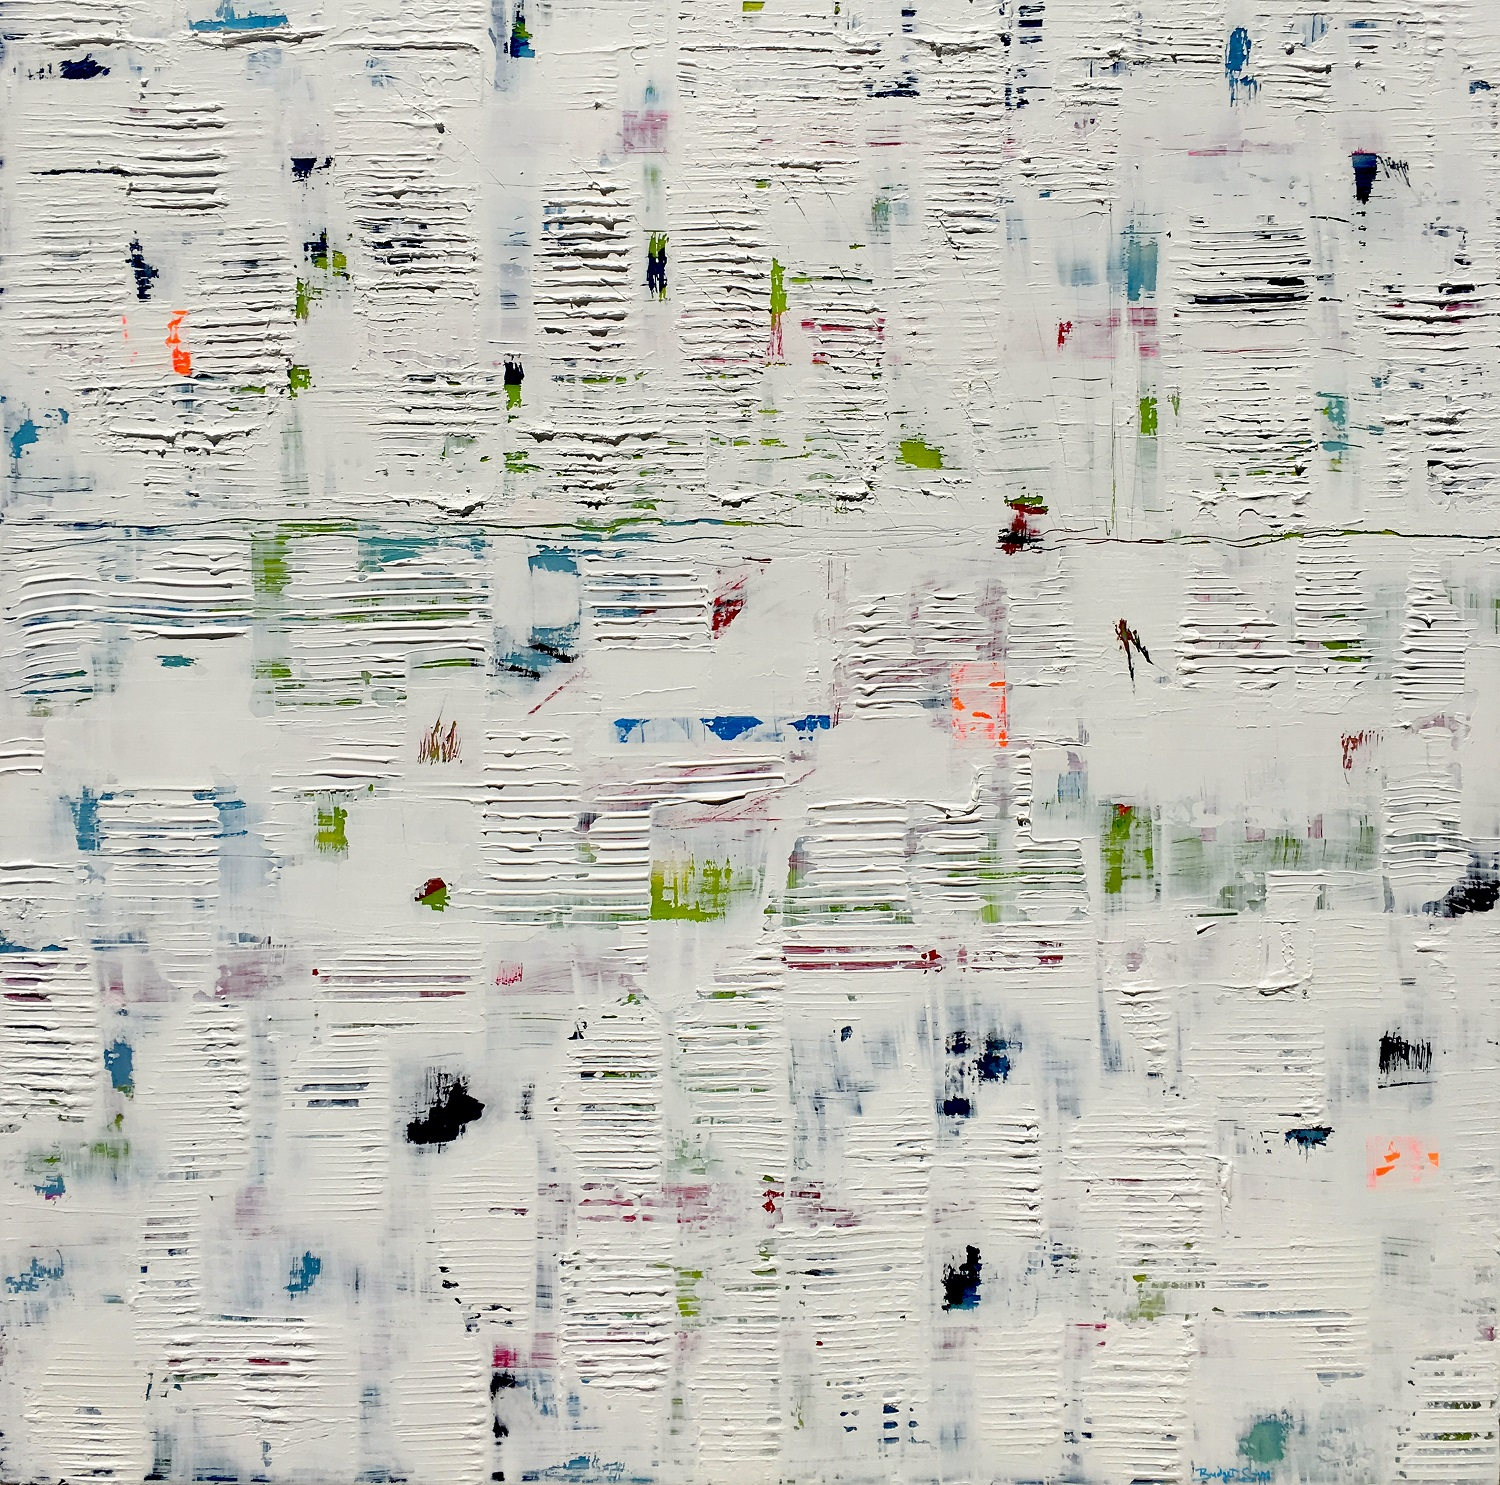 Griggs_Inspiration Winter White Spring Colours #1_48x48 $4300